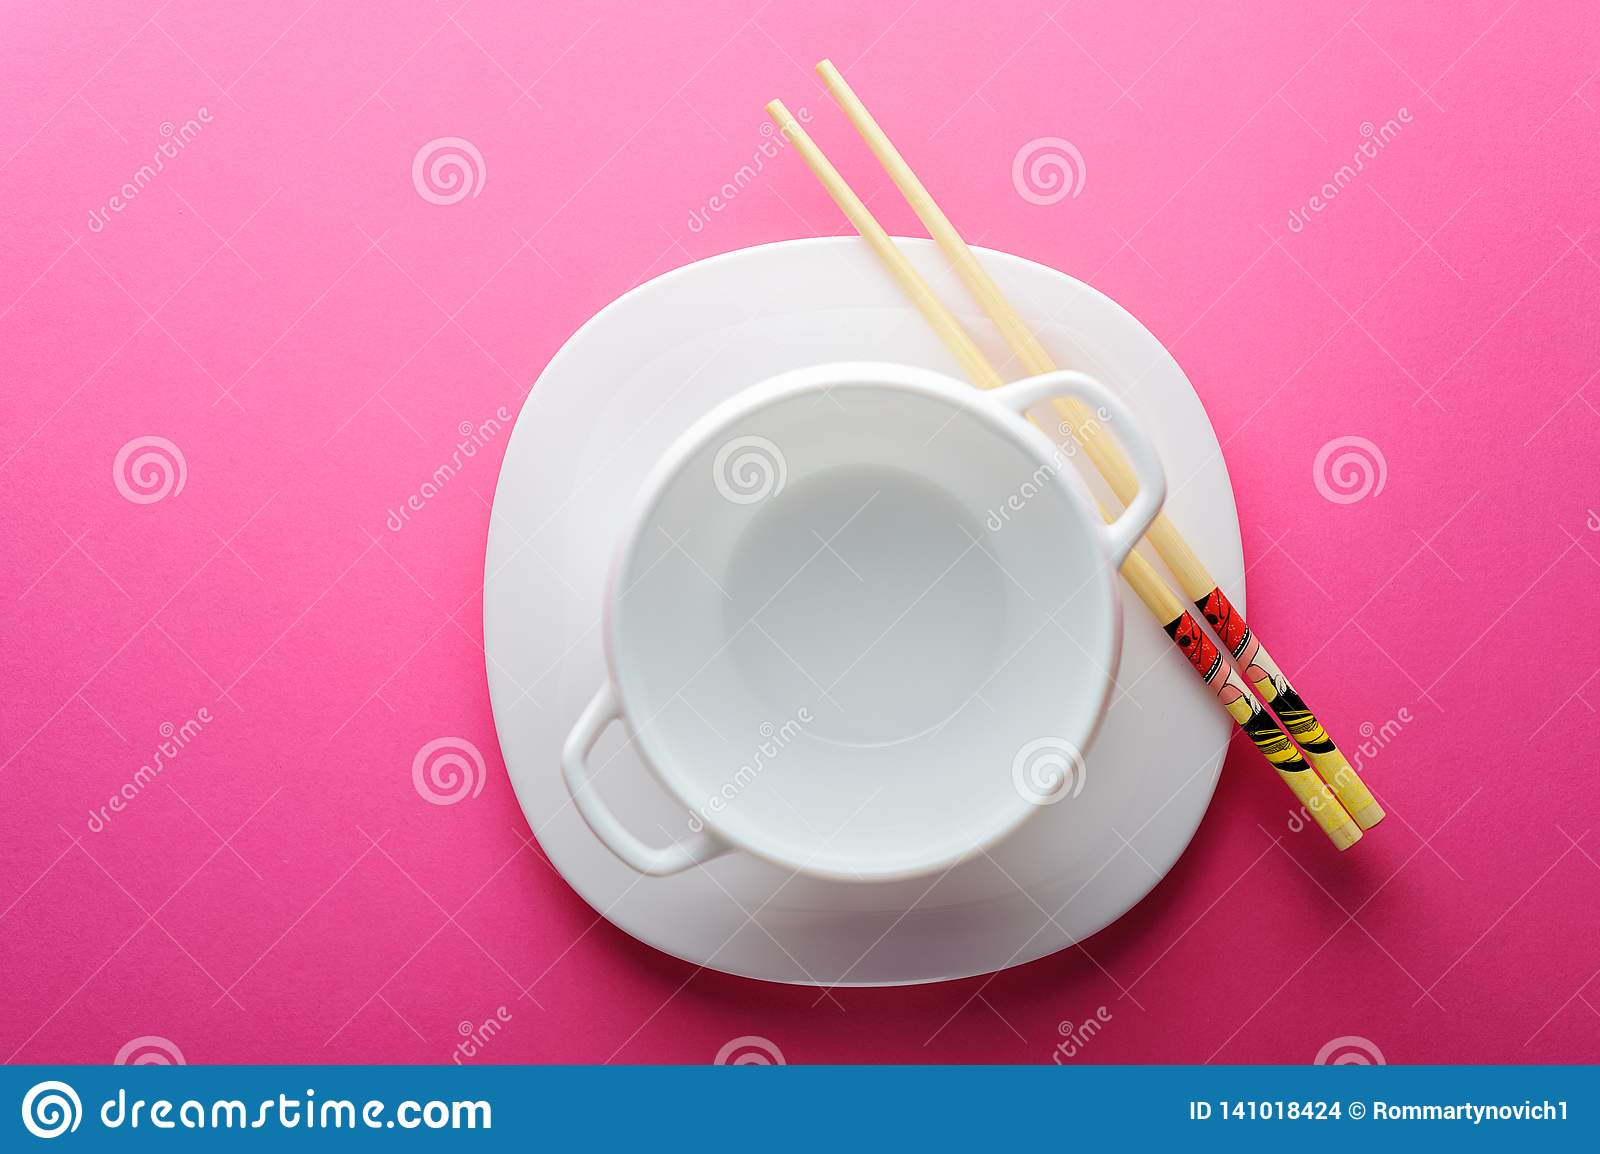 Chinese sticks white plate on a pink background